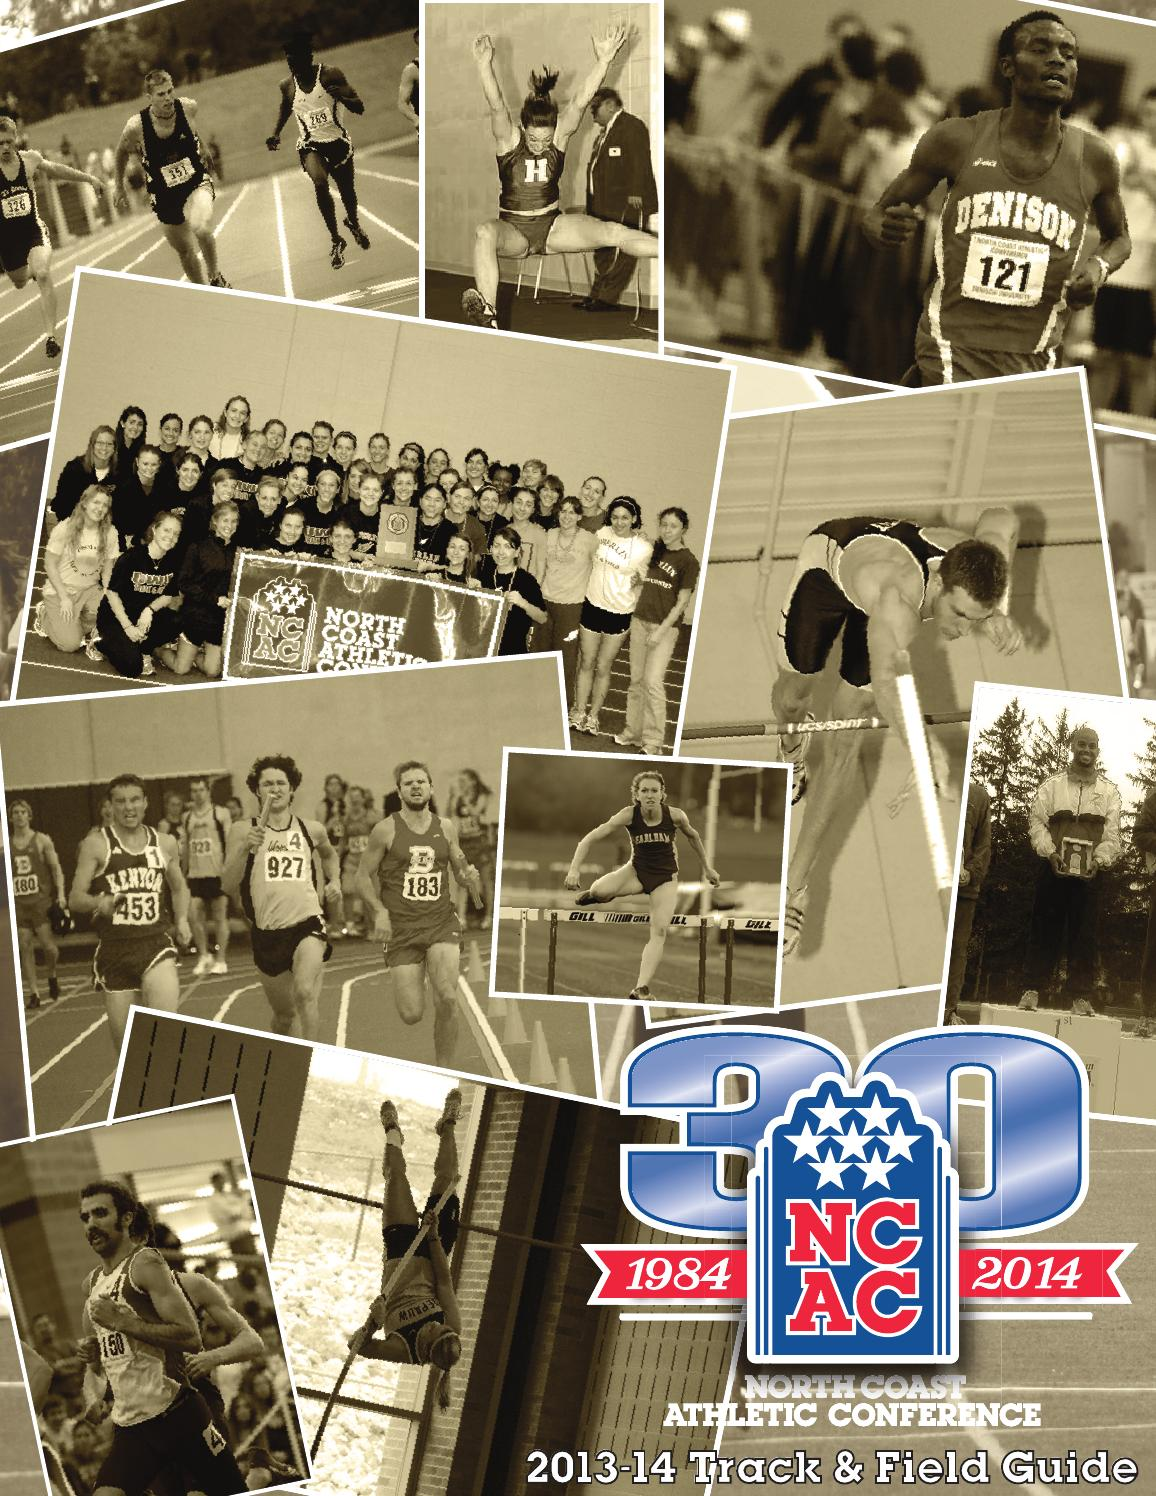 Denison University Football >> 2013-14 NCAC Track & Field Guide by North Coast Athletic